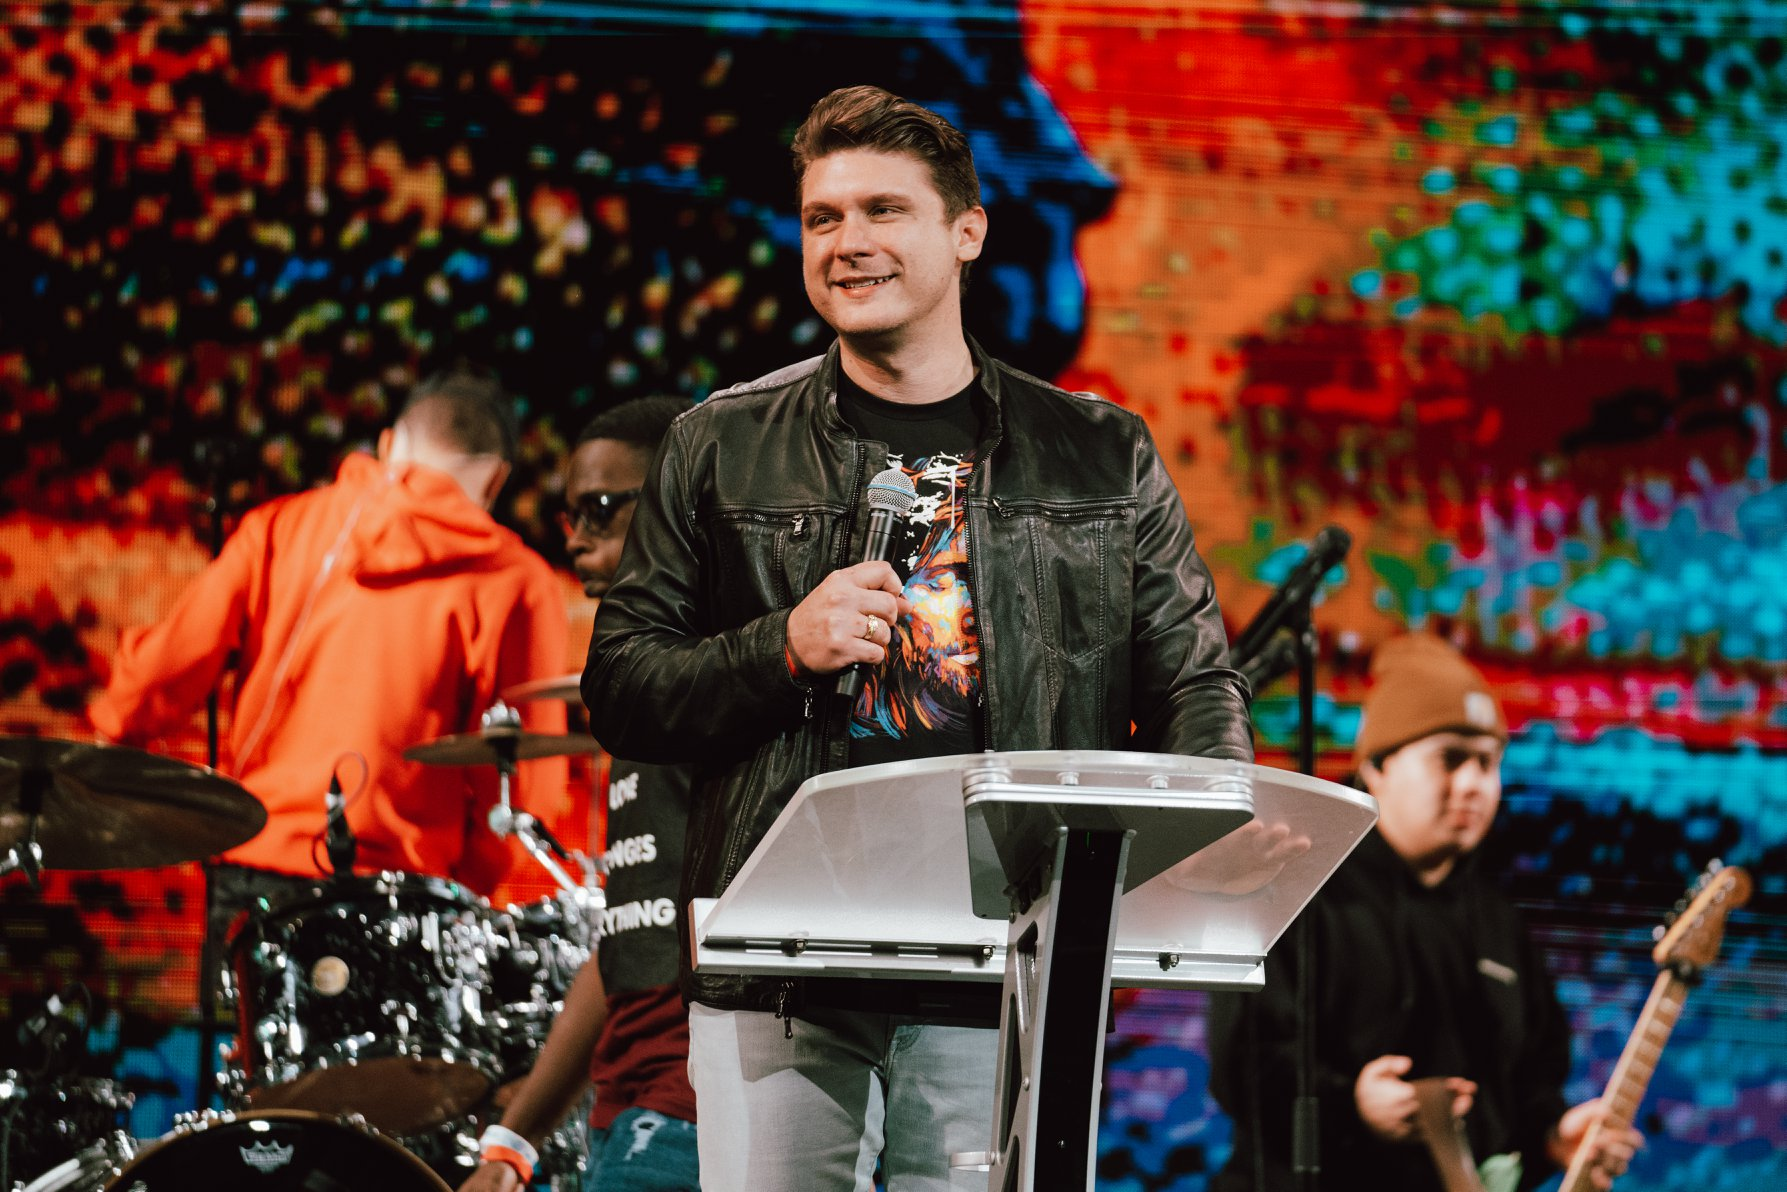 Christ for All Nations President Daniel Kolenda announces his new ministry, Nations Church, during the Fire21 conference in Orlando, Florida. Photo: LaTanya Newell.